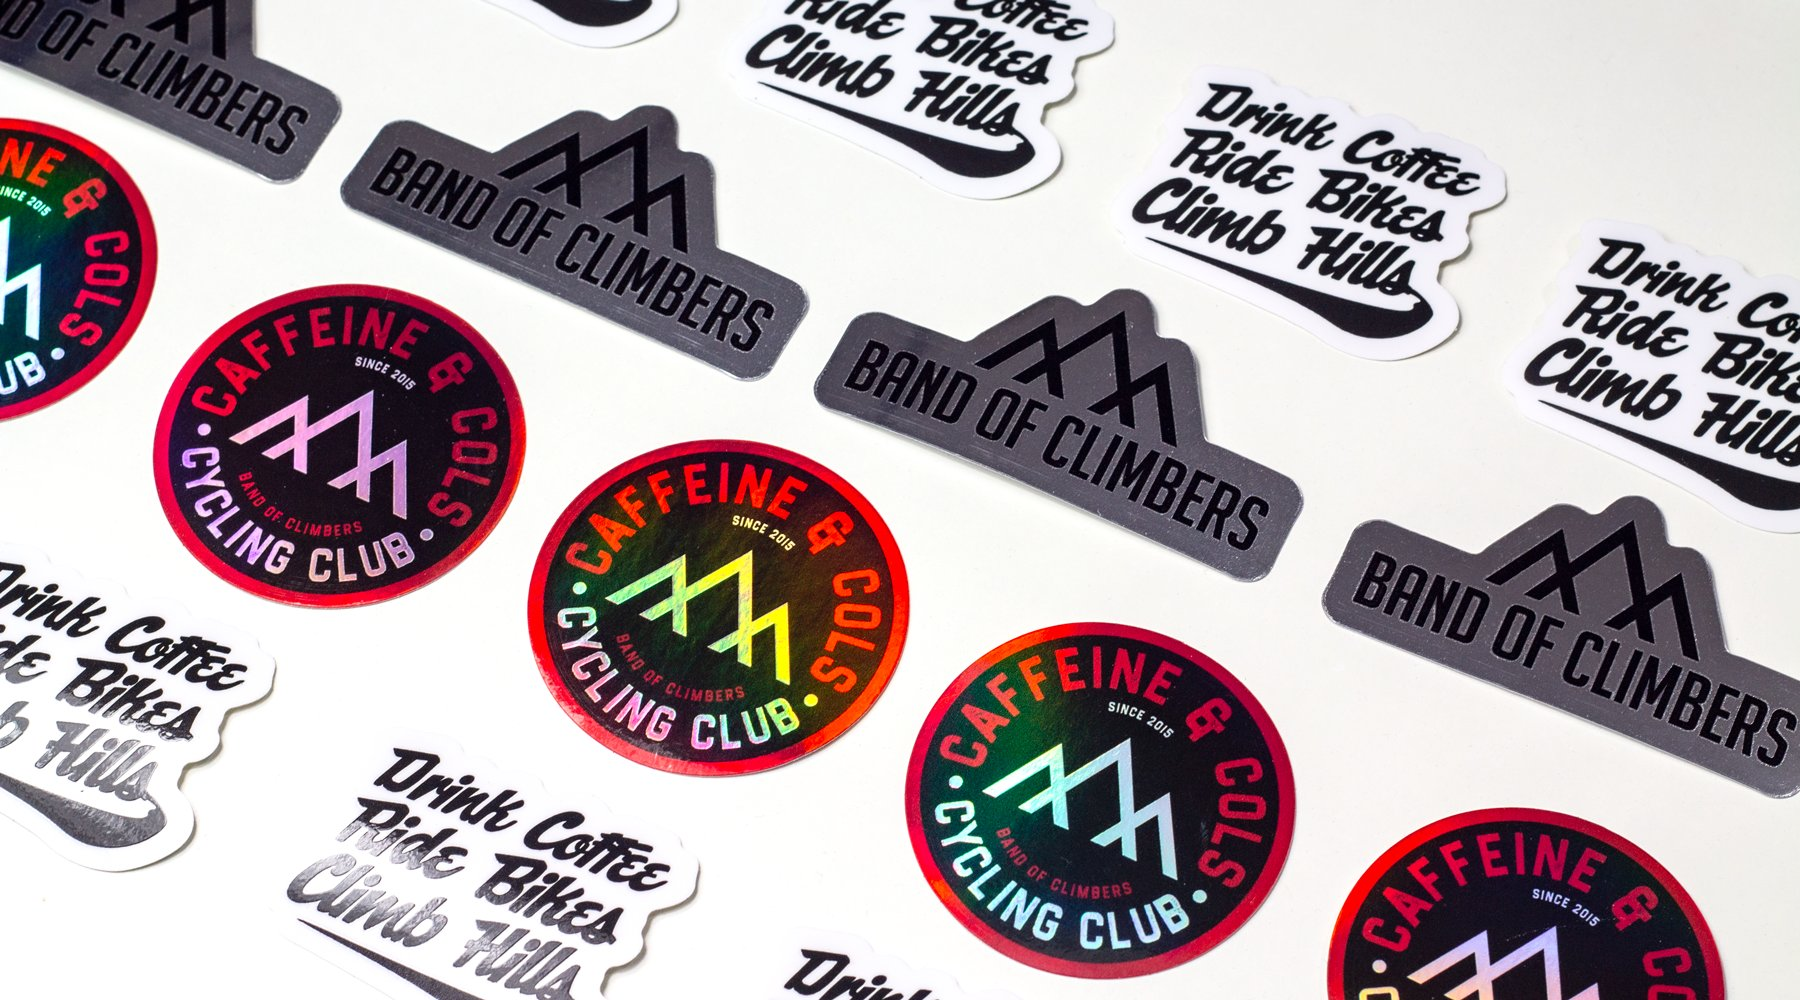 Band of Climbers Stickers